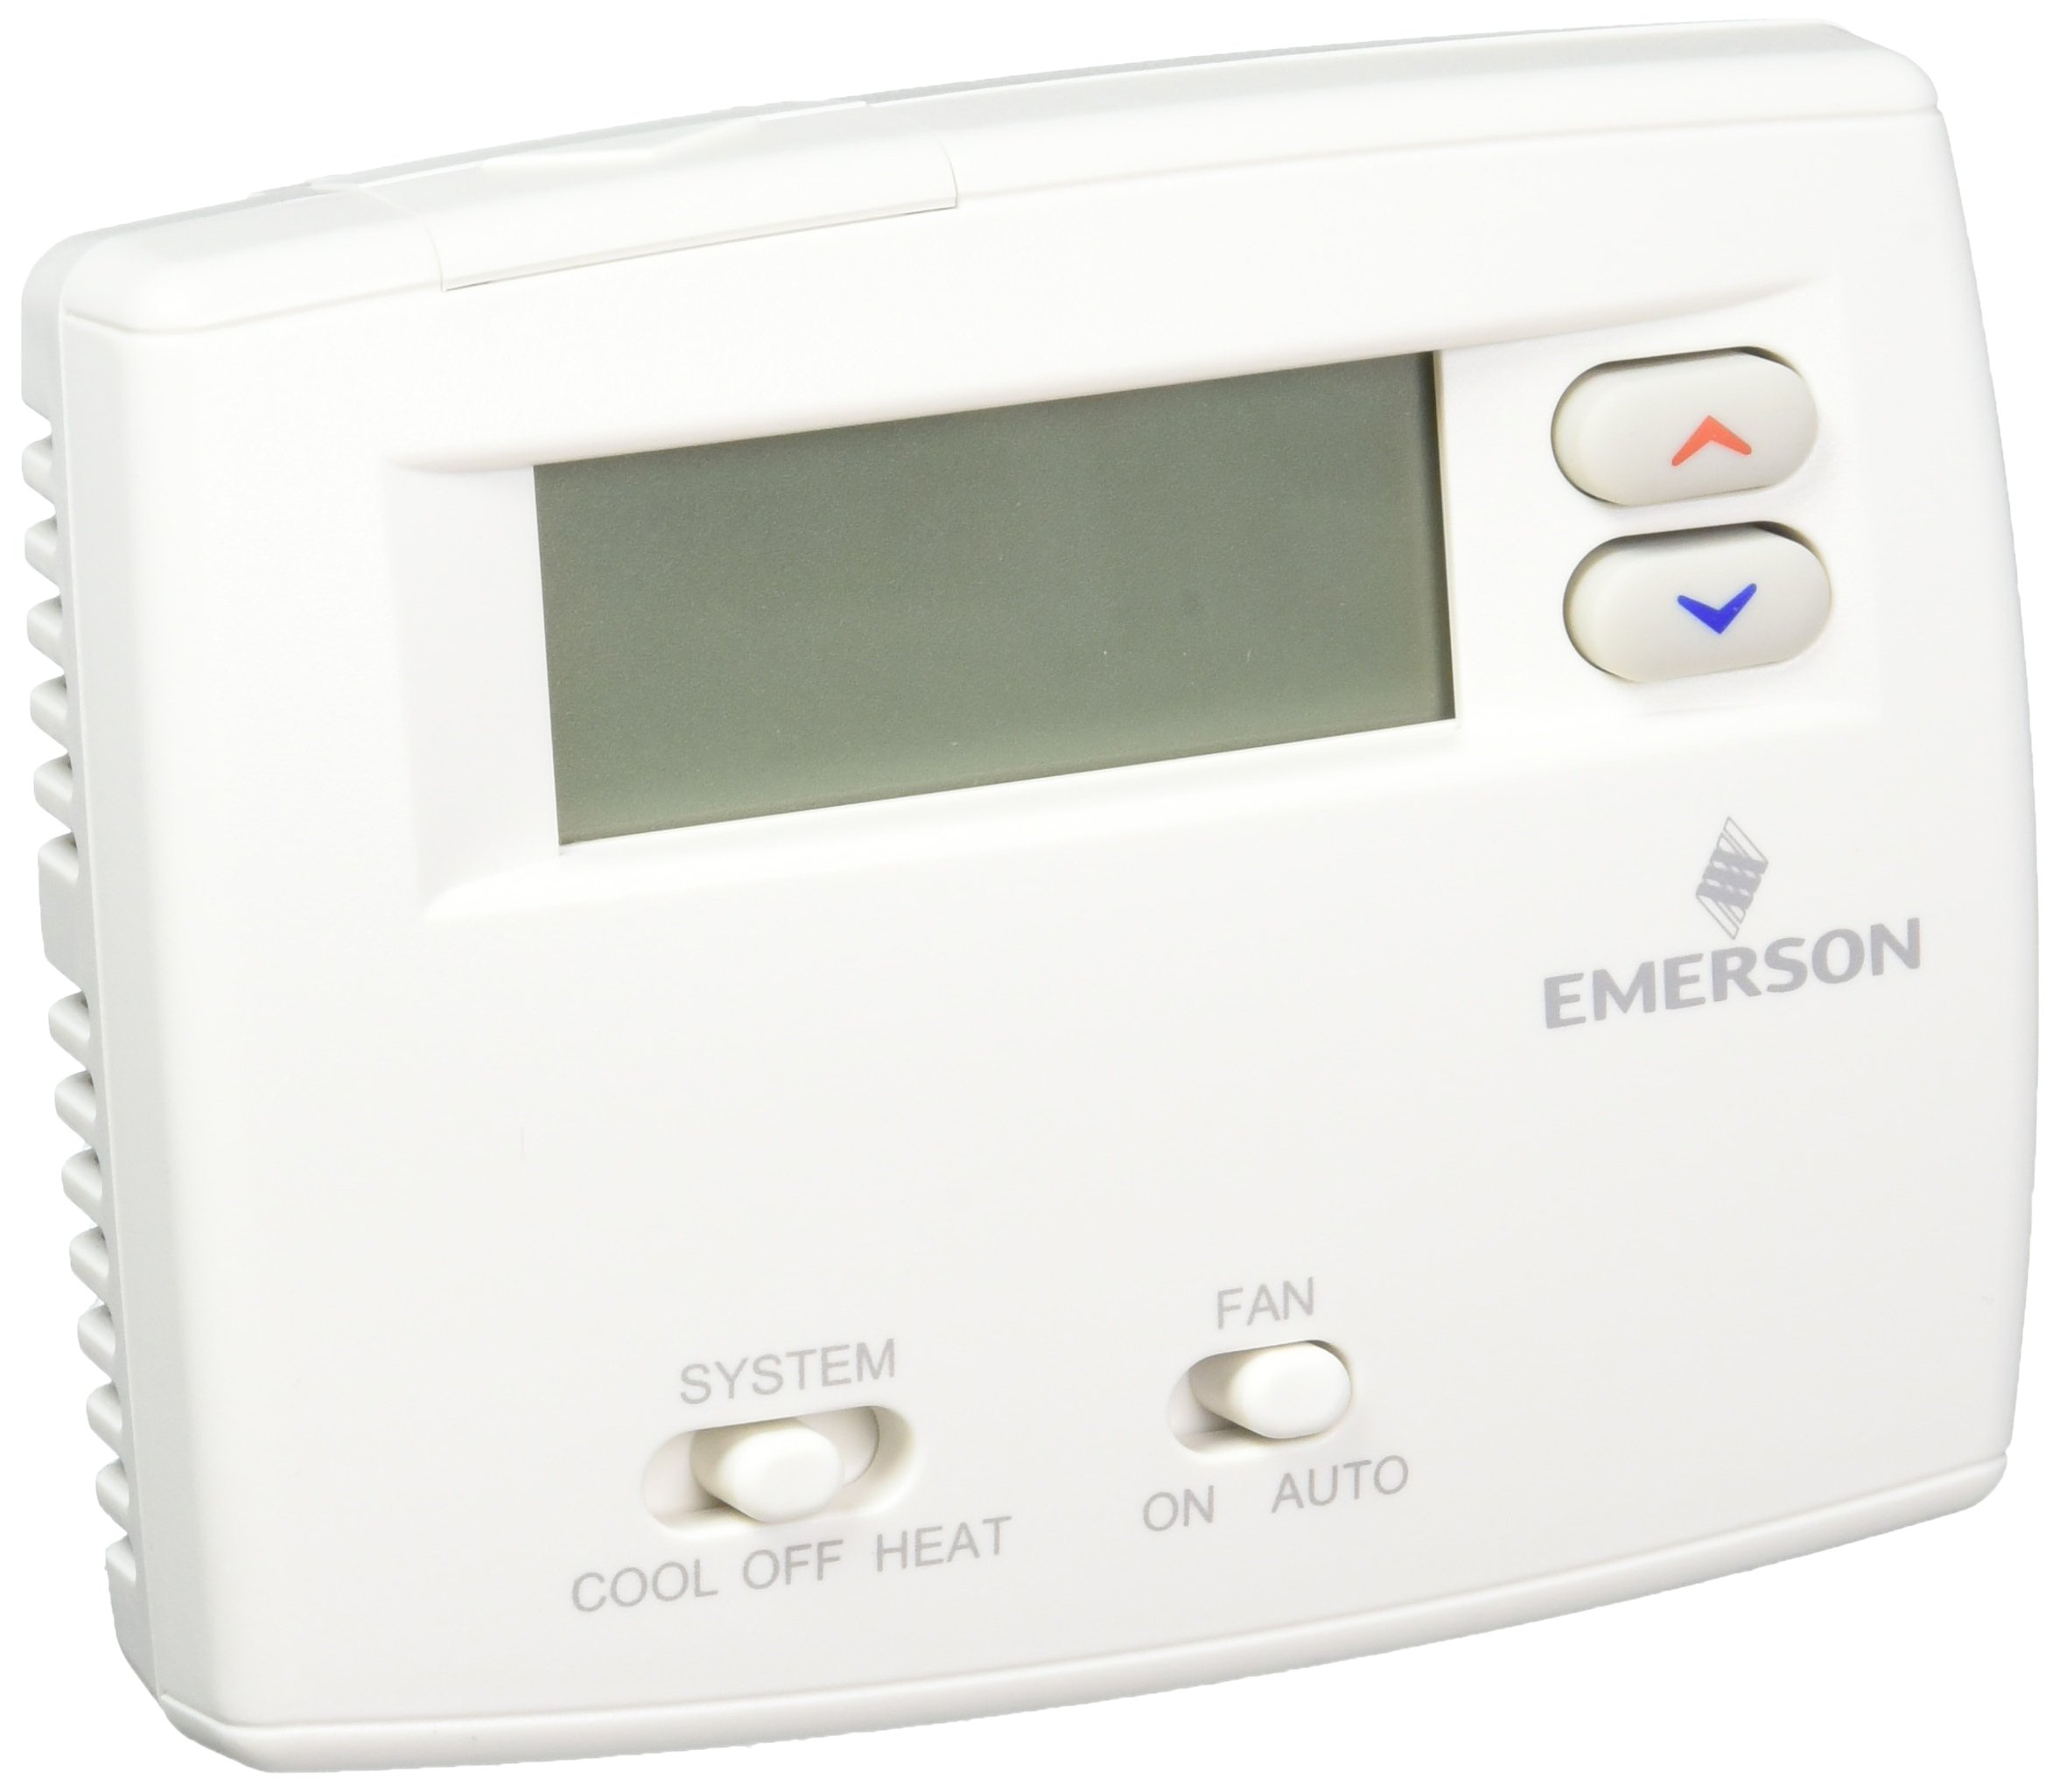 Emerson 1F86-0244 Blue 2'' Display, Single Stage (1H/1C) Non-Programmable